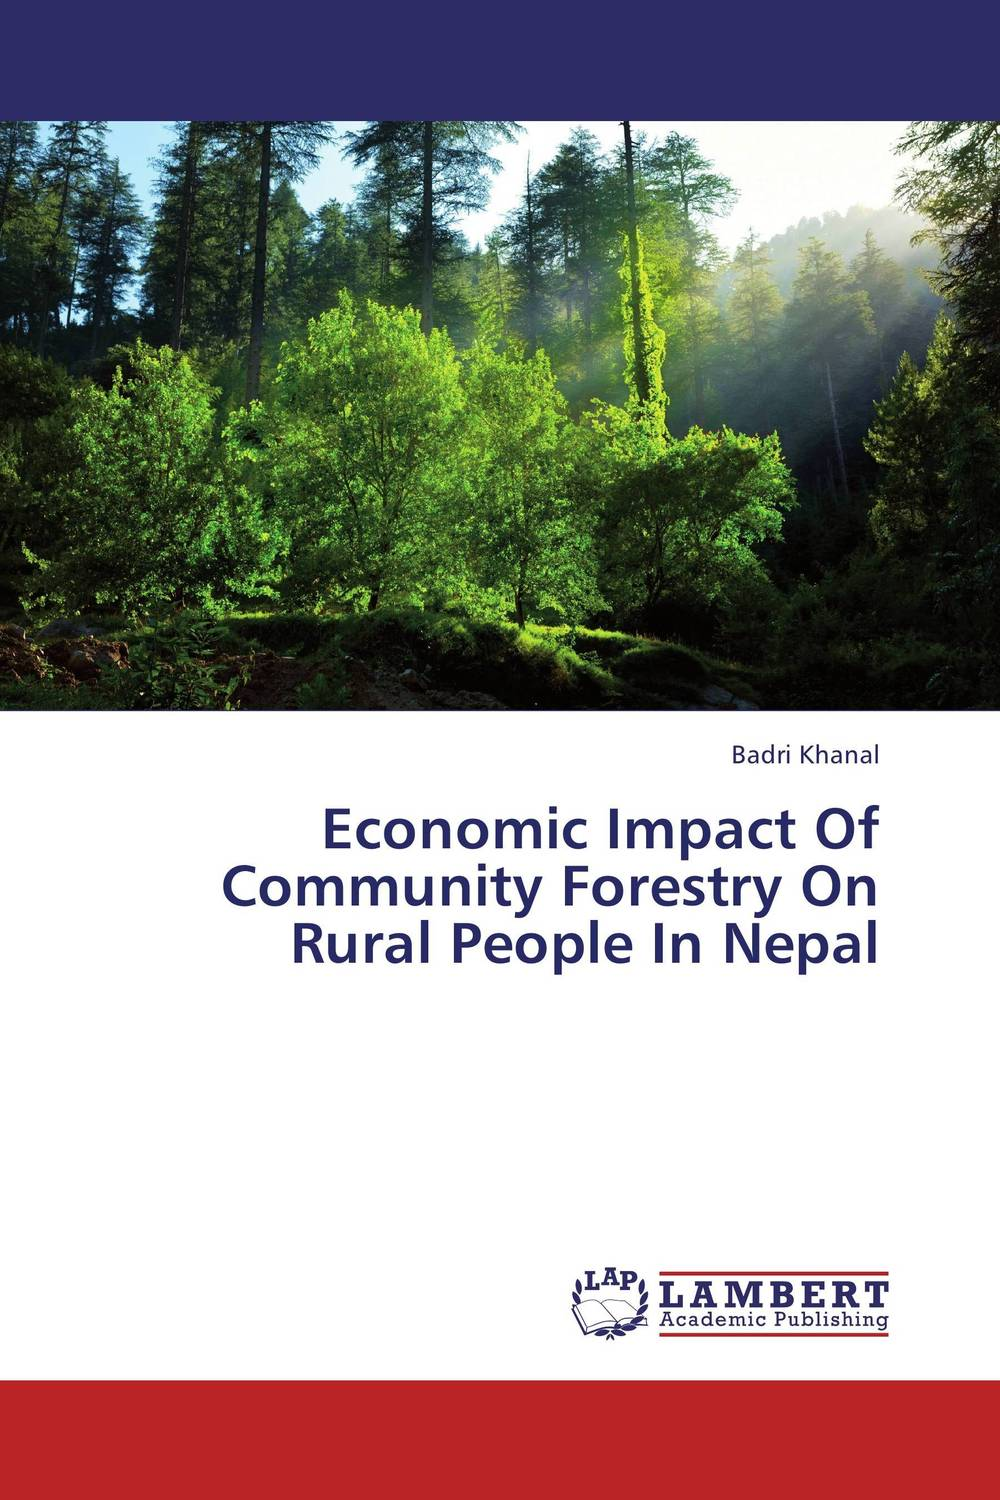 Economic Impact Of Community Forestry On Rural People In Nepal kenneth rosen d investing in income properties the big six formula for achieving wealth in real estate